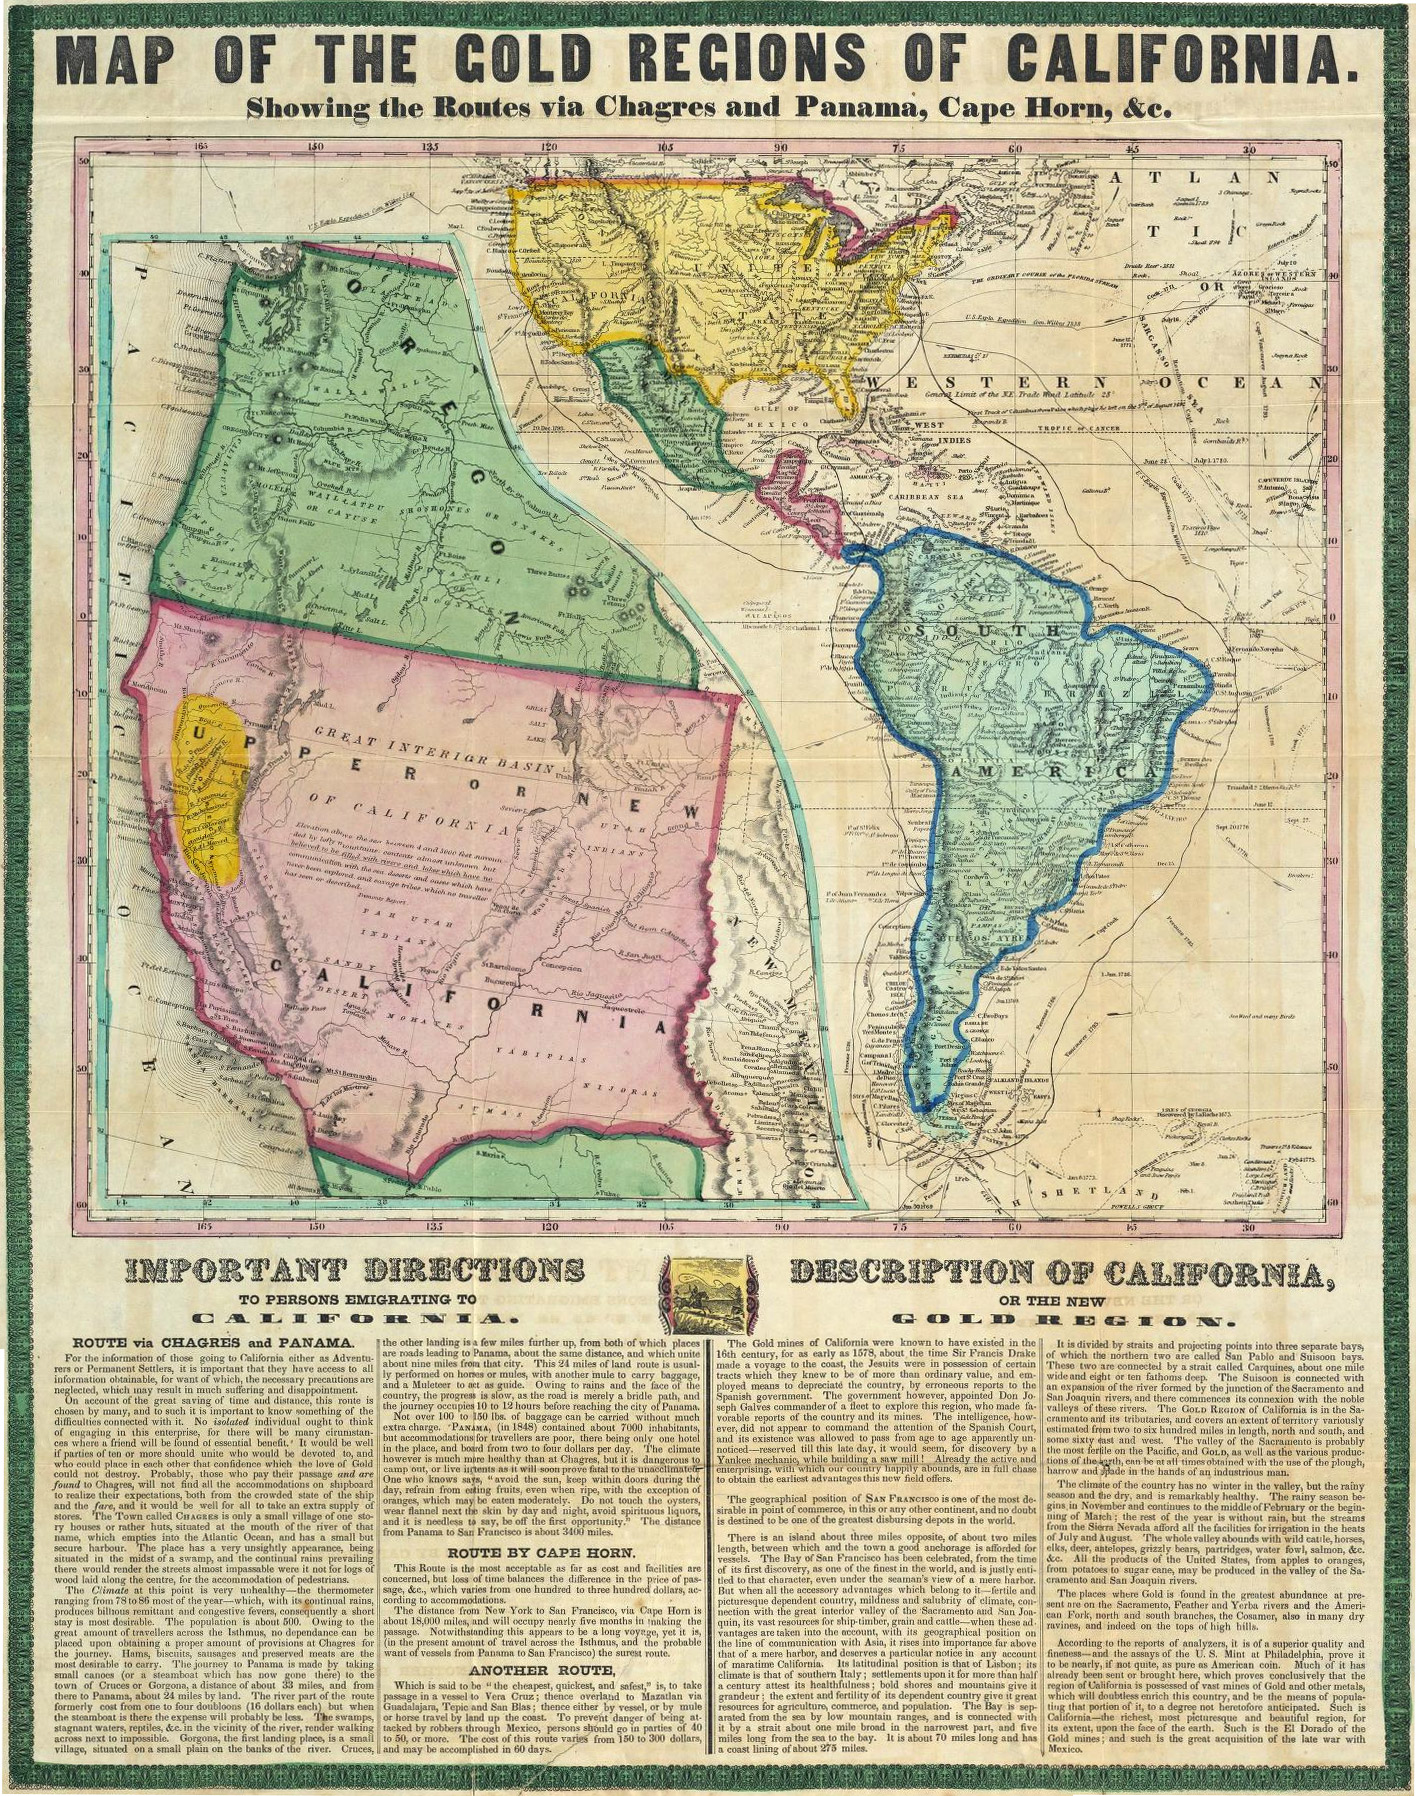 Map of the Gold Regions of California, circa 1850